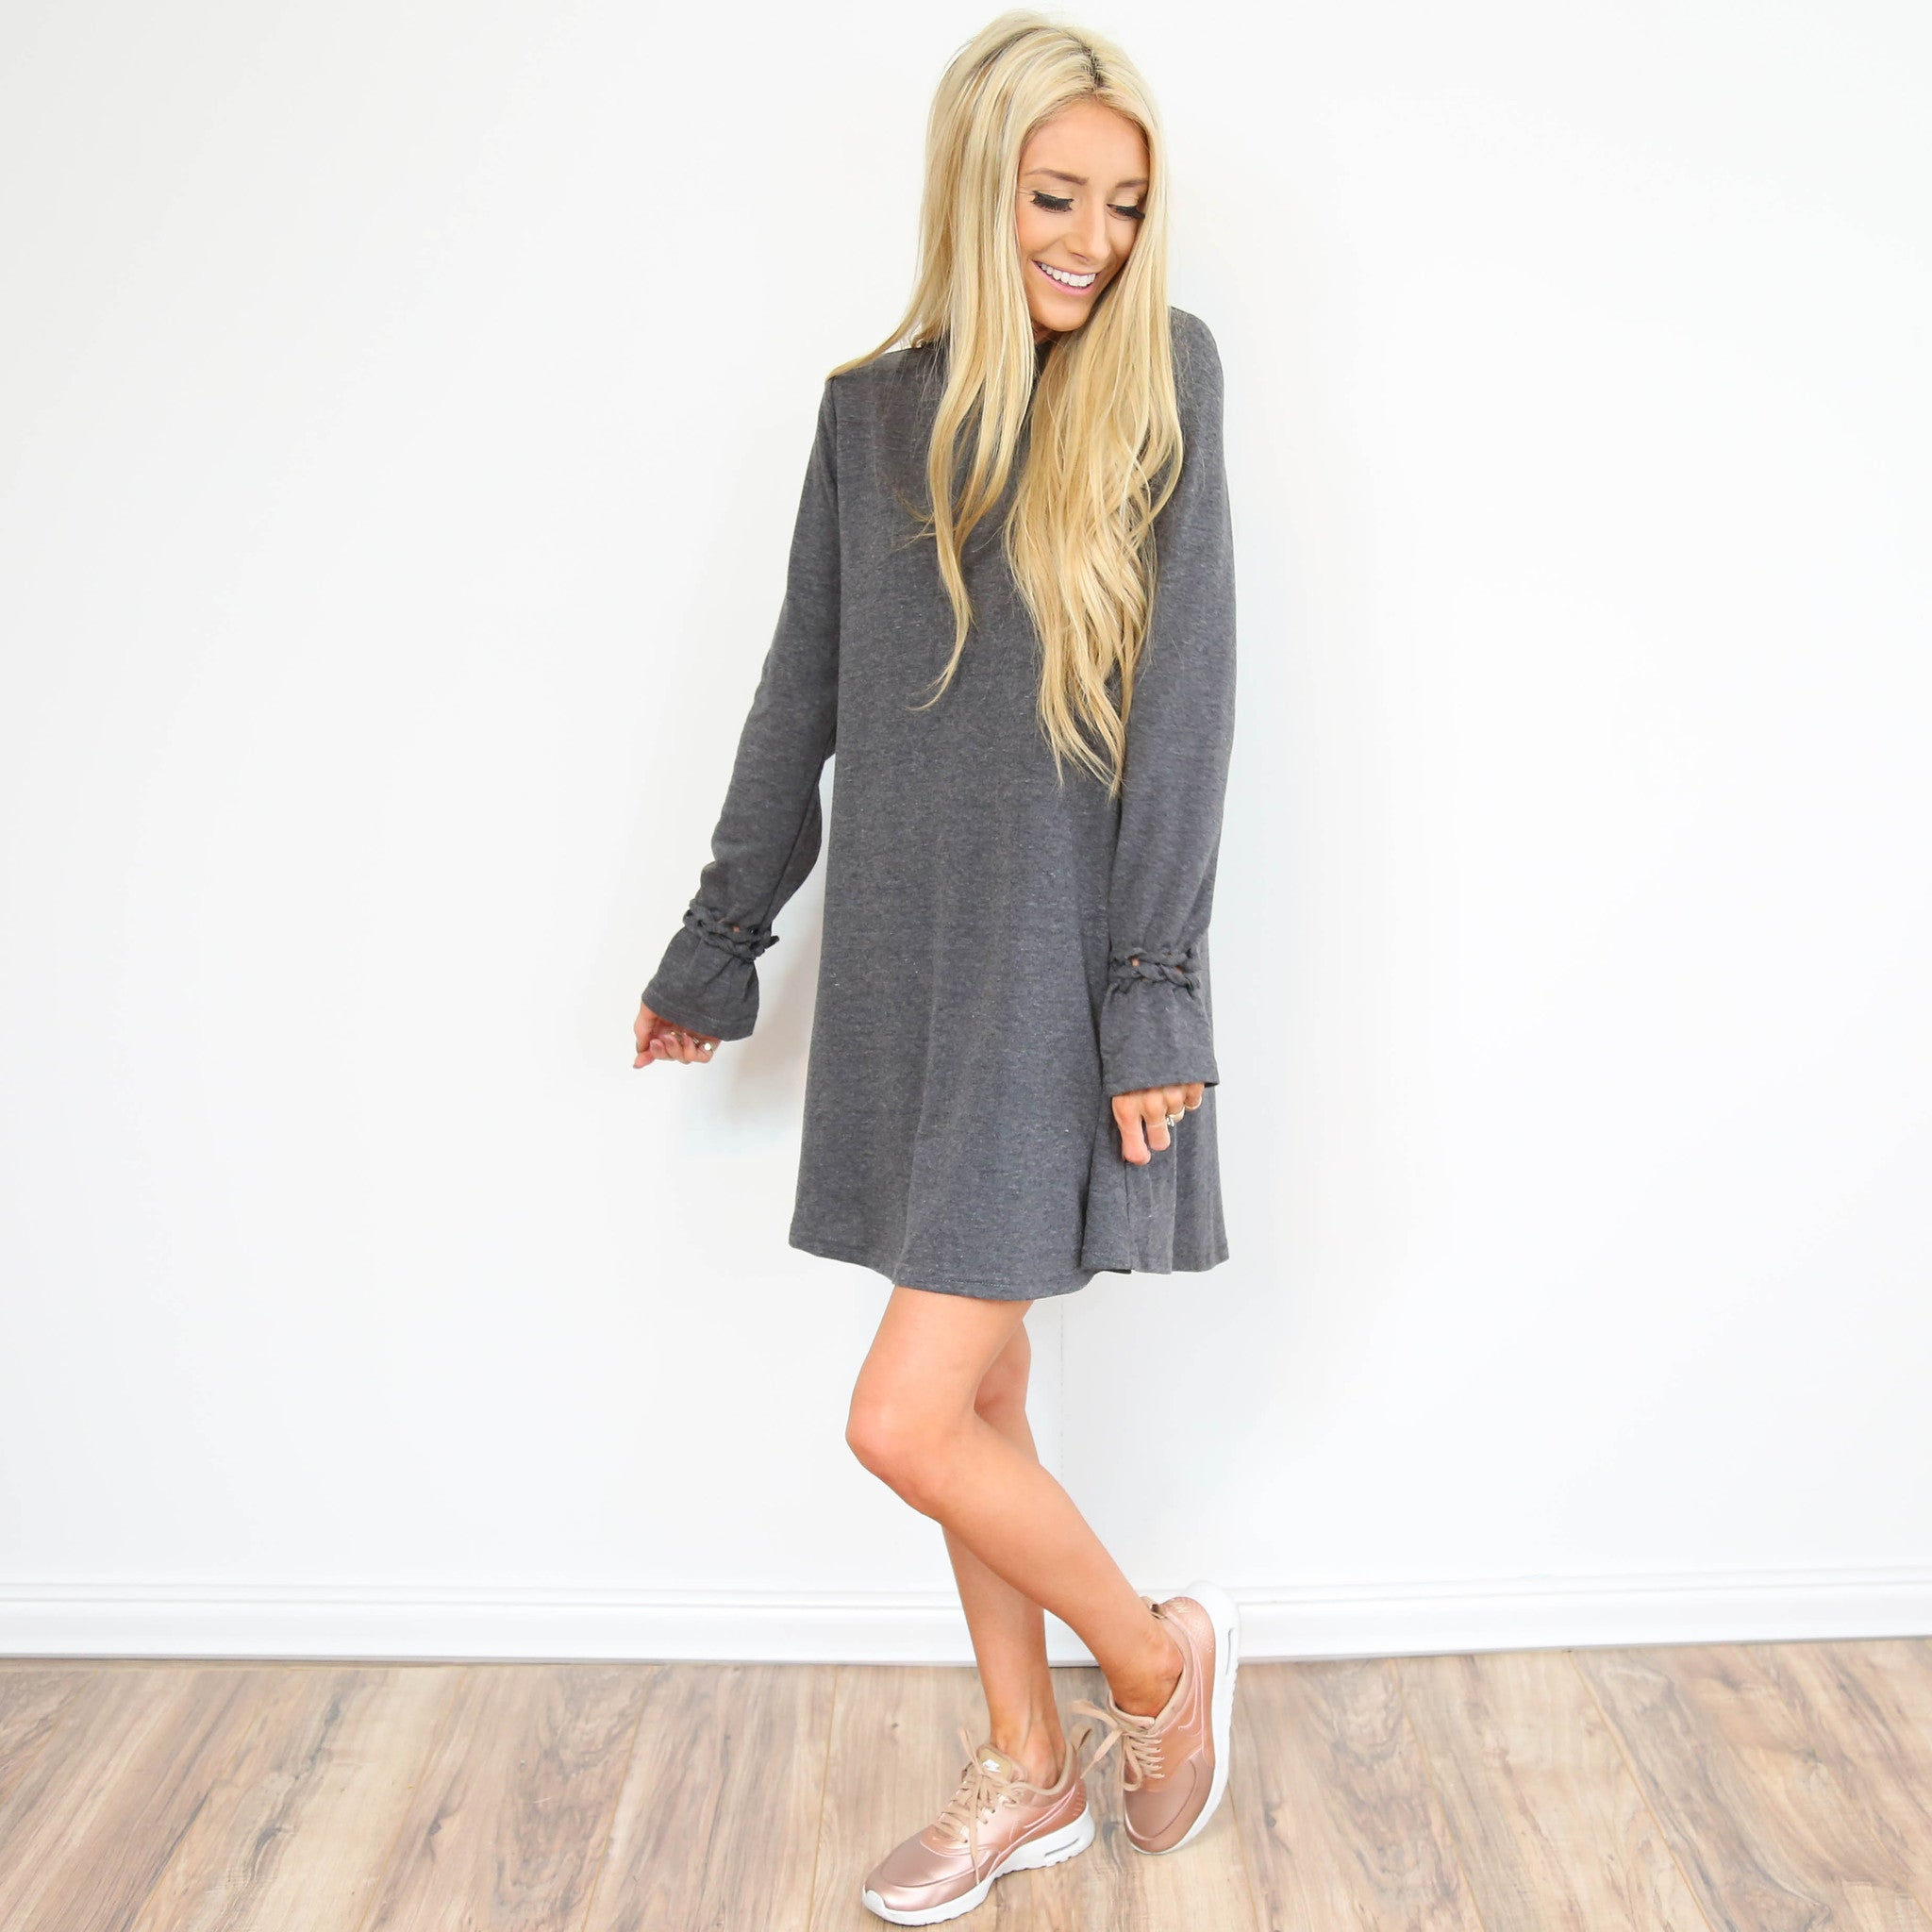 Grey Sleeve Detailed Dress